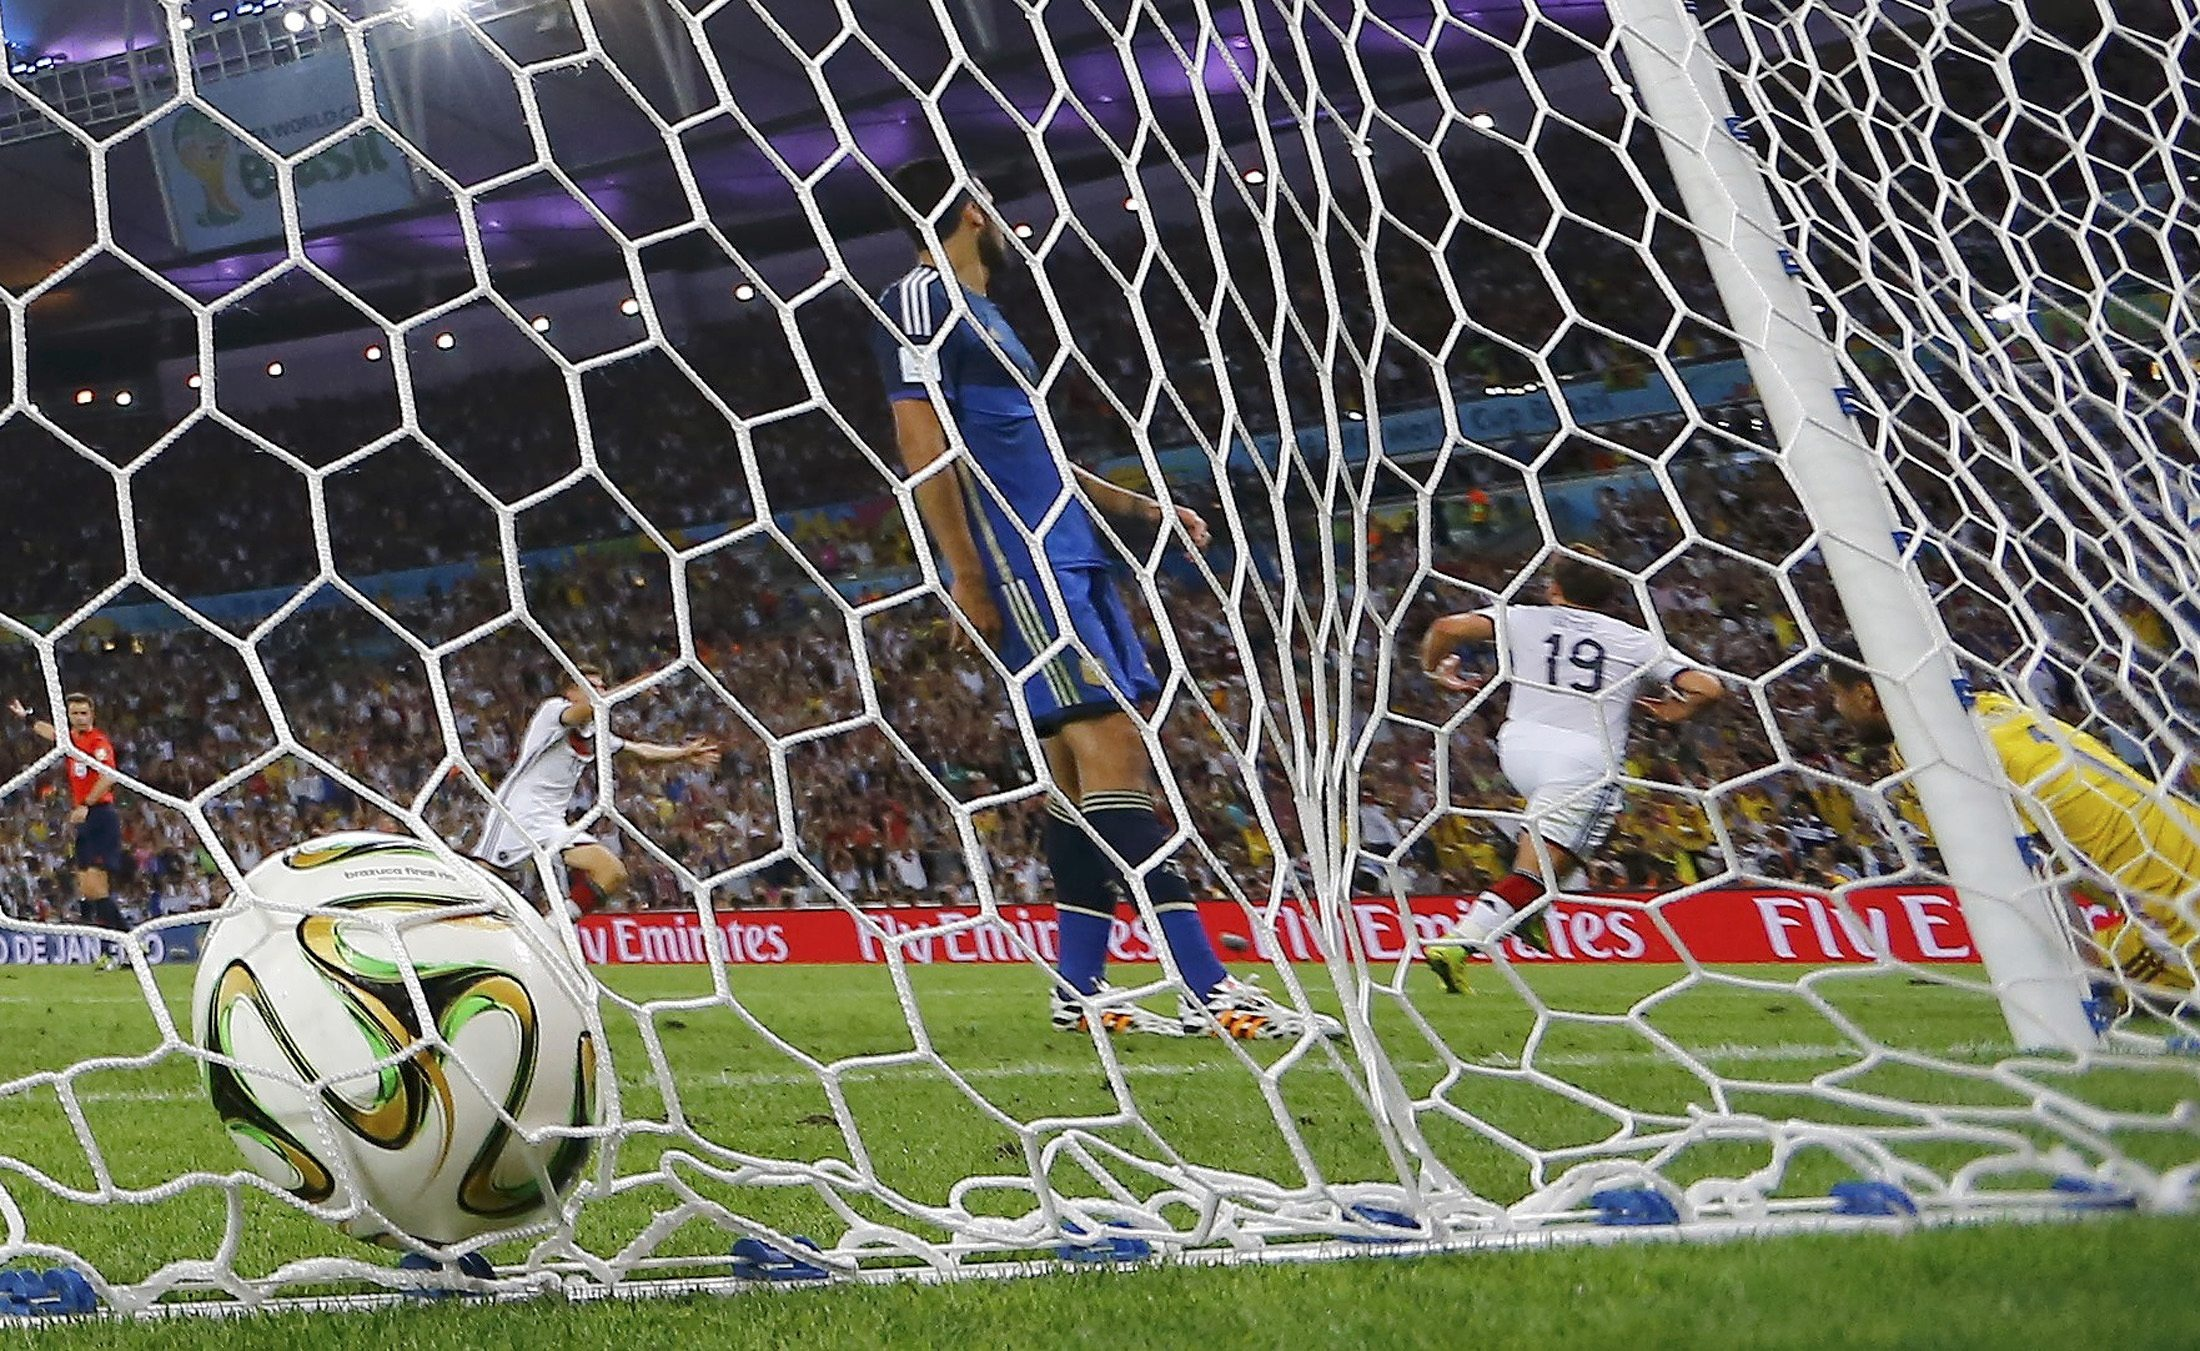 Germany's Mario Goetze (2nd R) celebrates after scoring a goal past Argentina's goalkeeper Sergio Romero during their 2014 World Cup final. Reuters